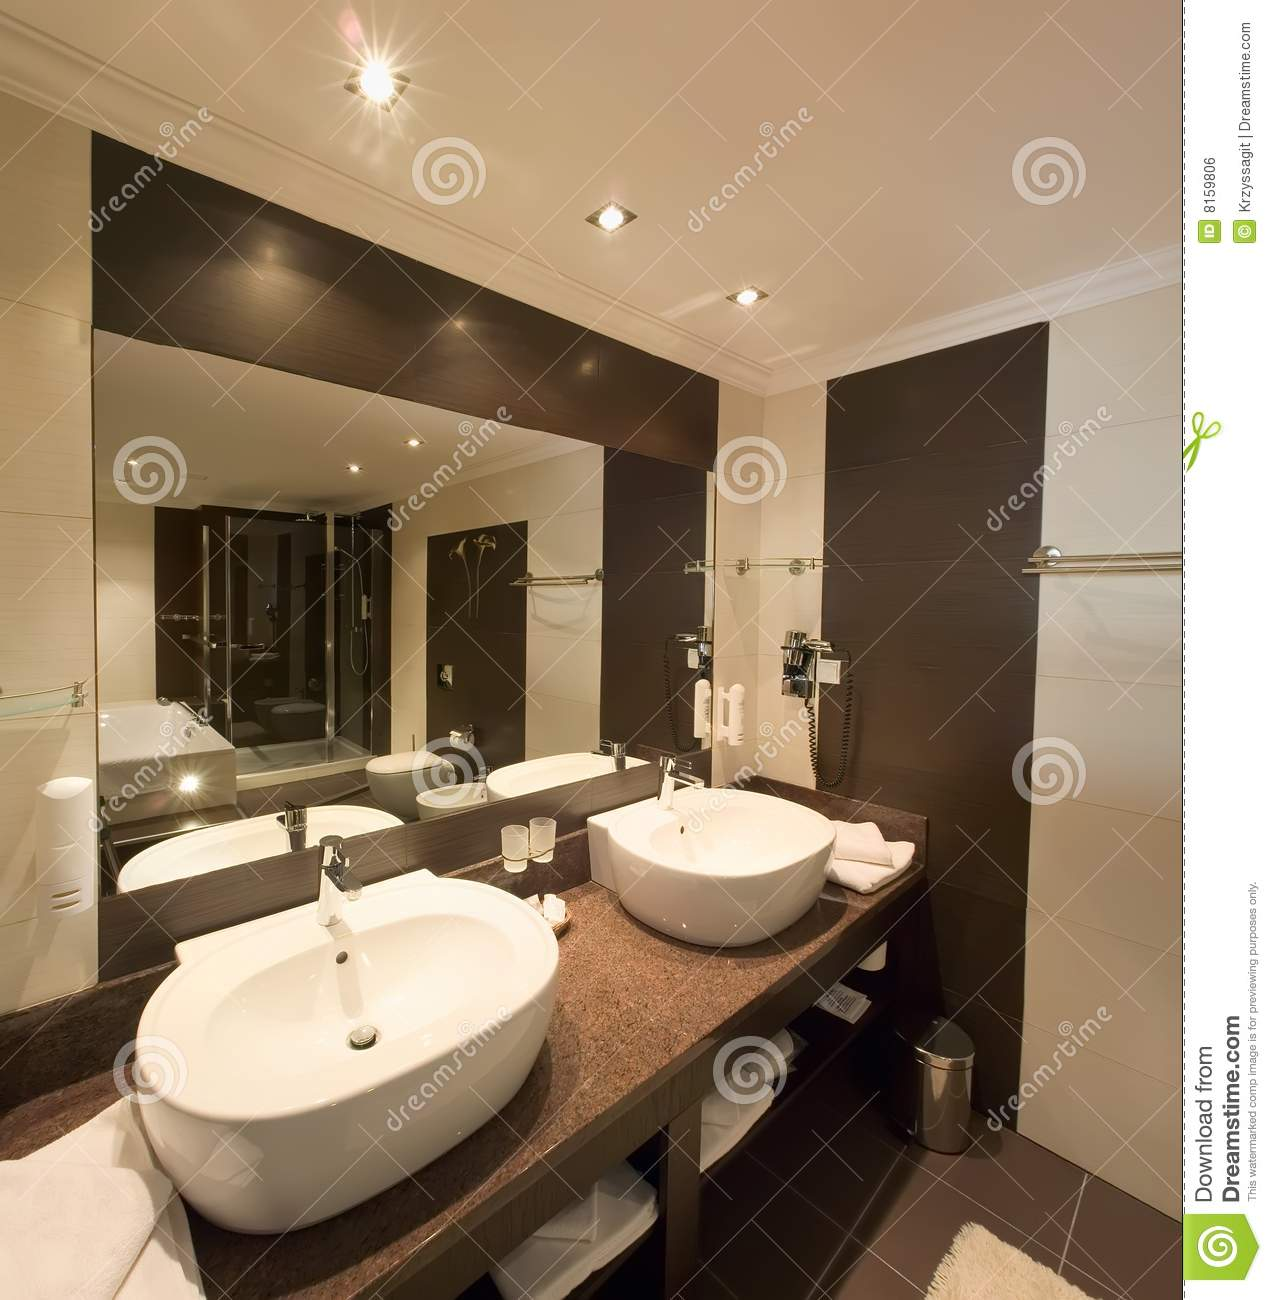 Elegant washroom royalty free stock image image 8159806 for Washroom bathroom designs